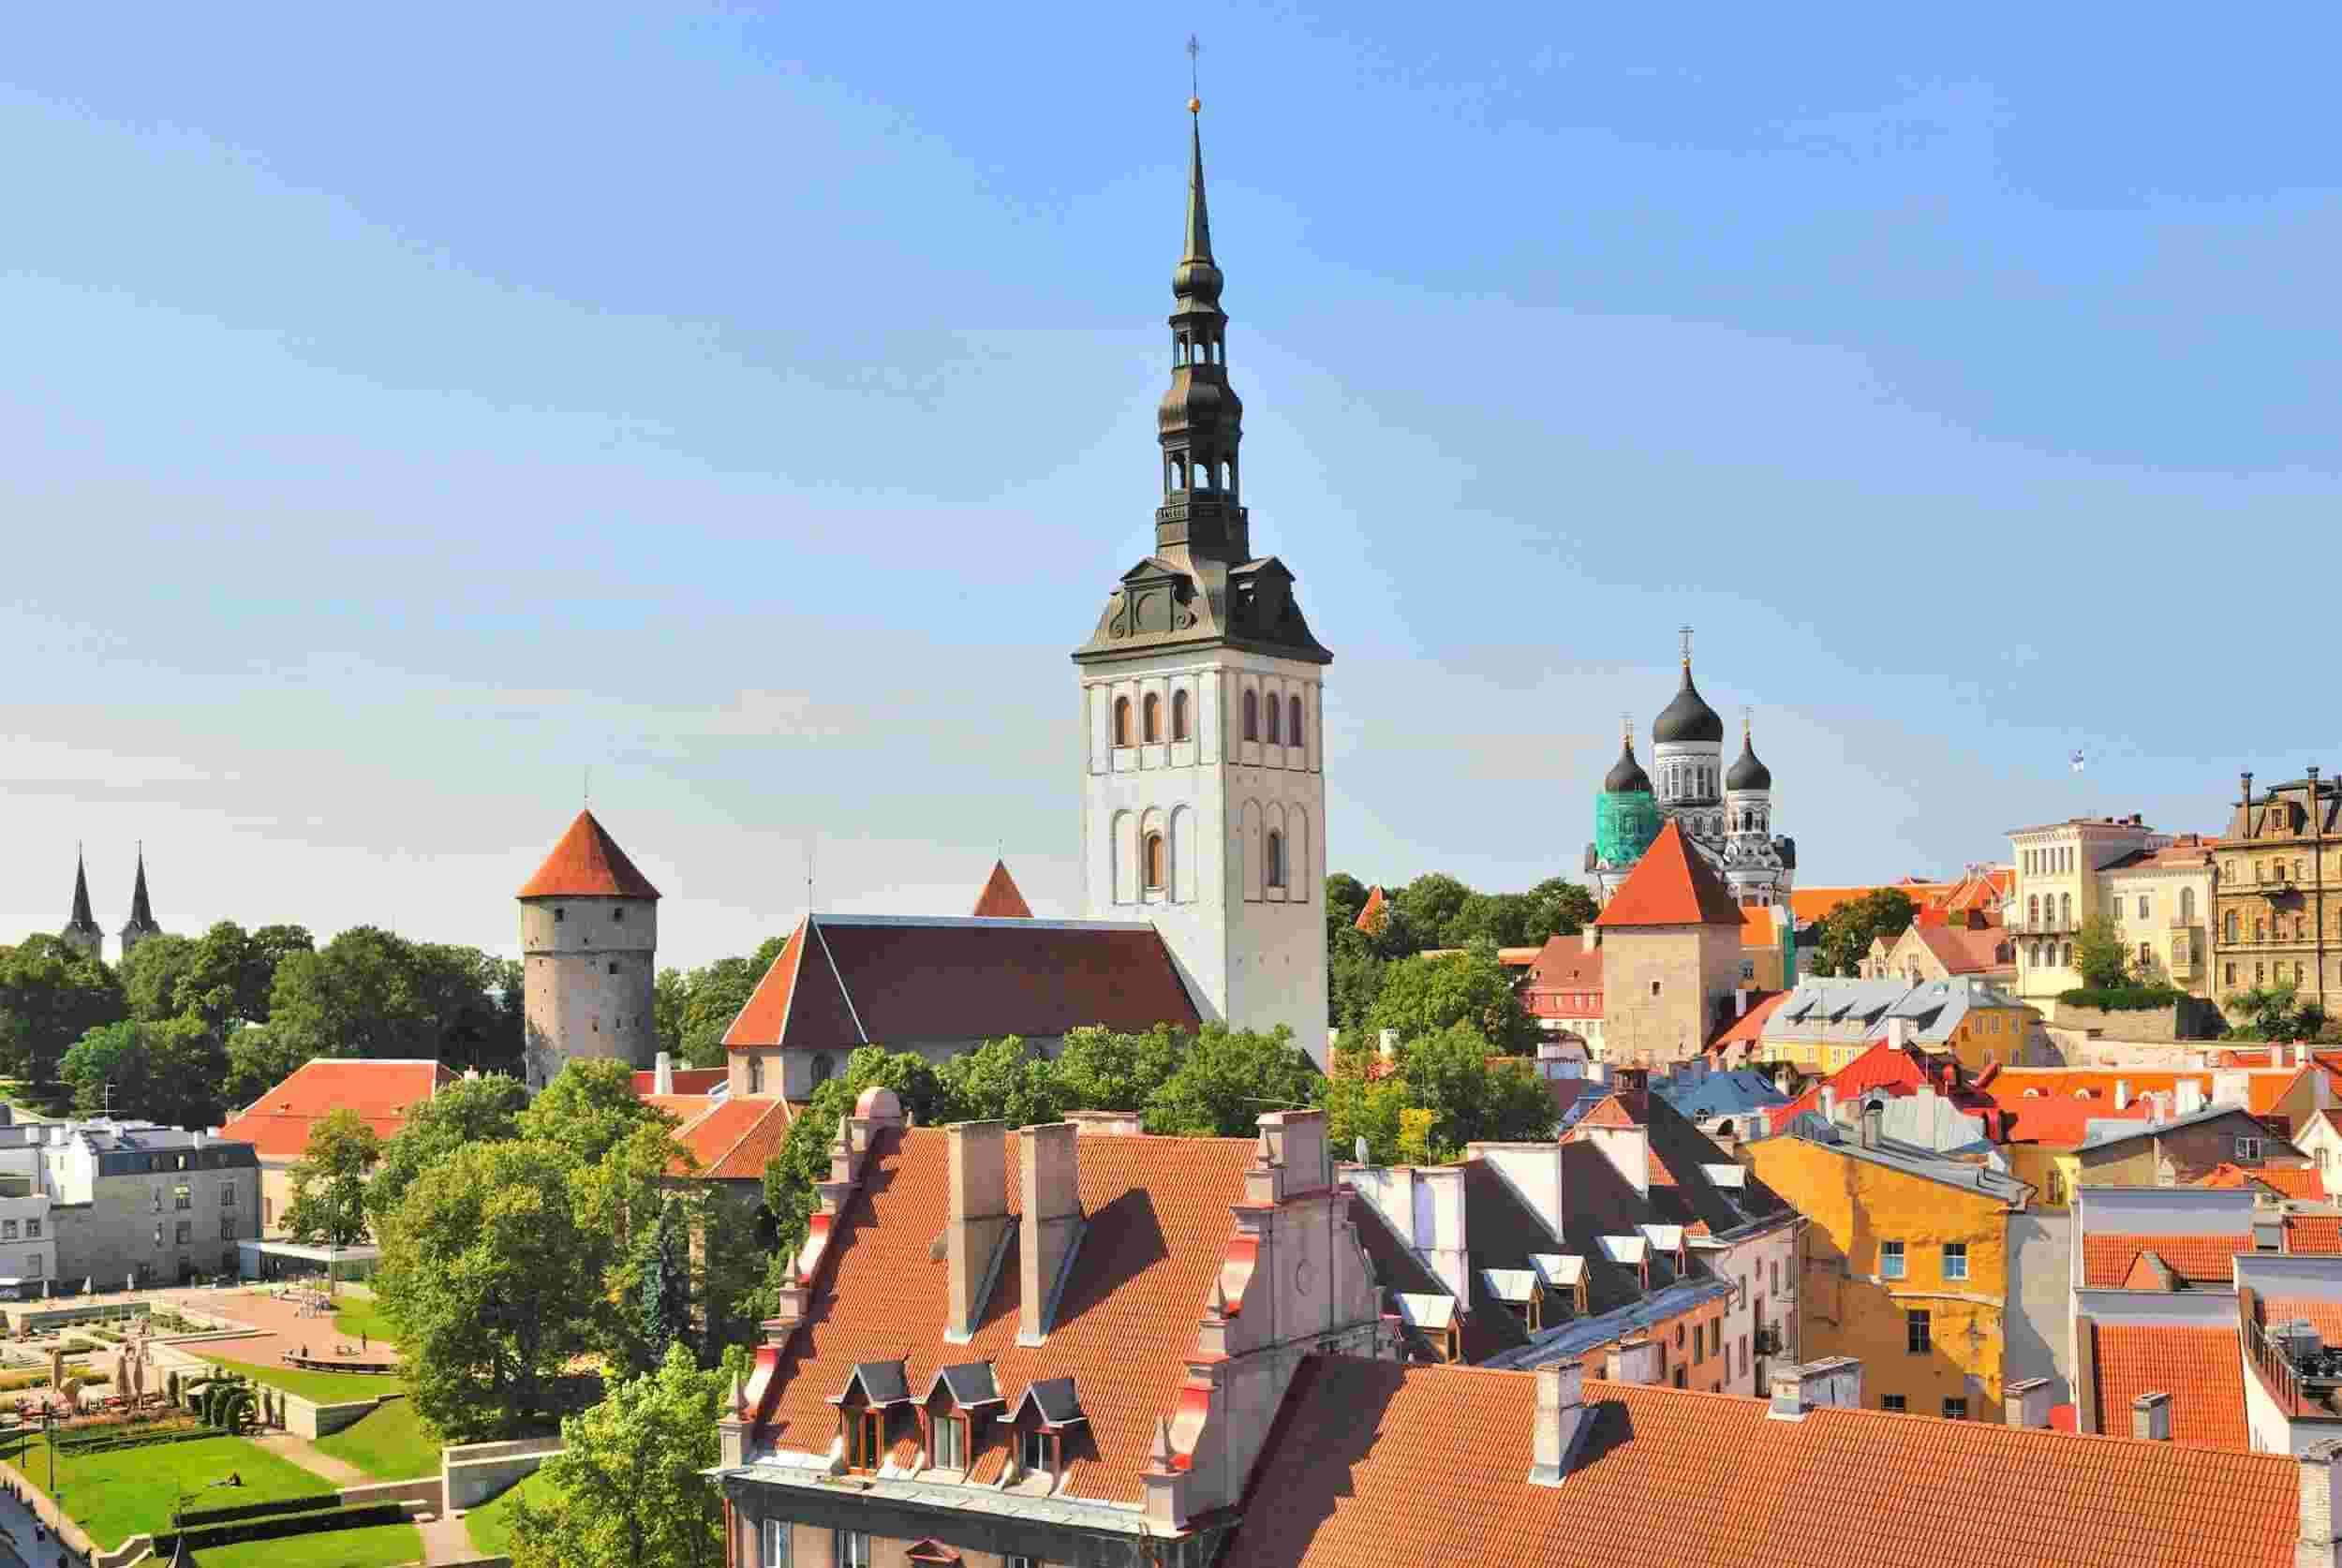 8-Day Baltic Triangle Tour from Tallinn